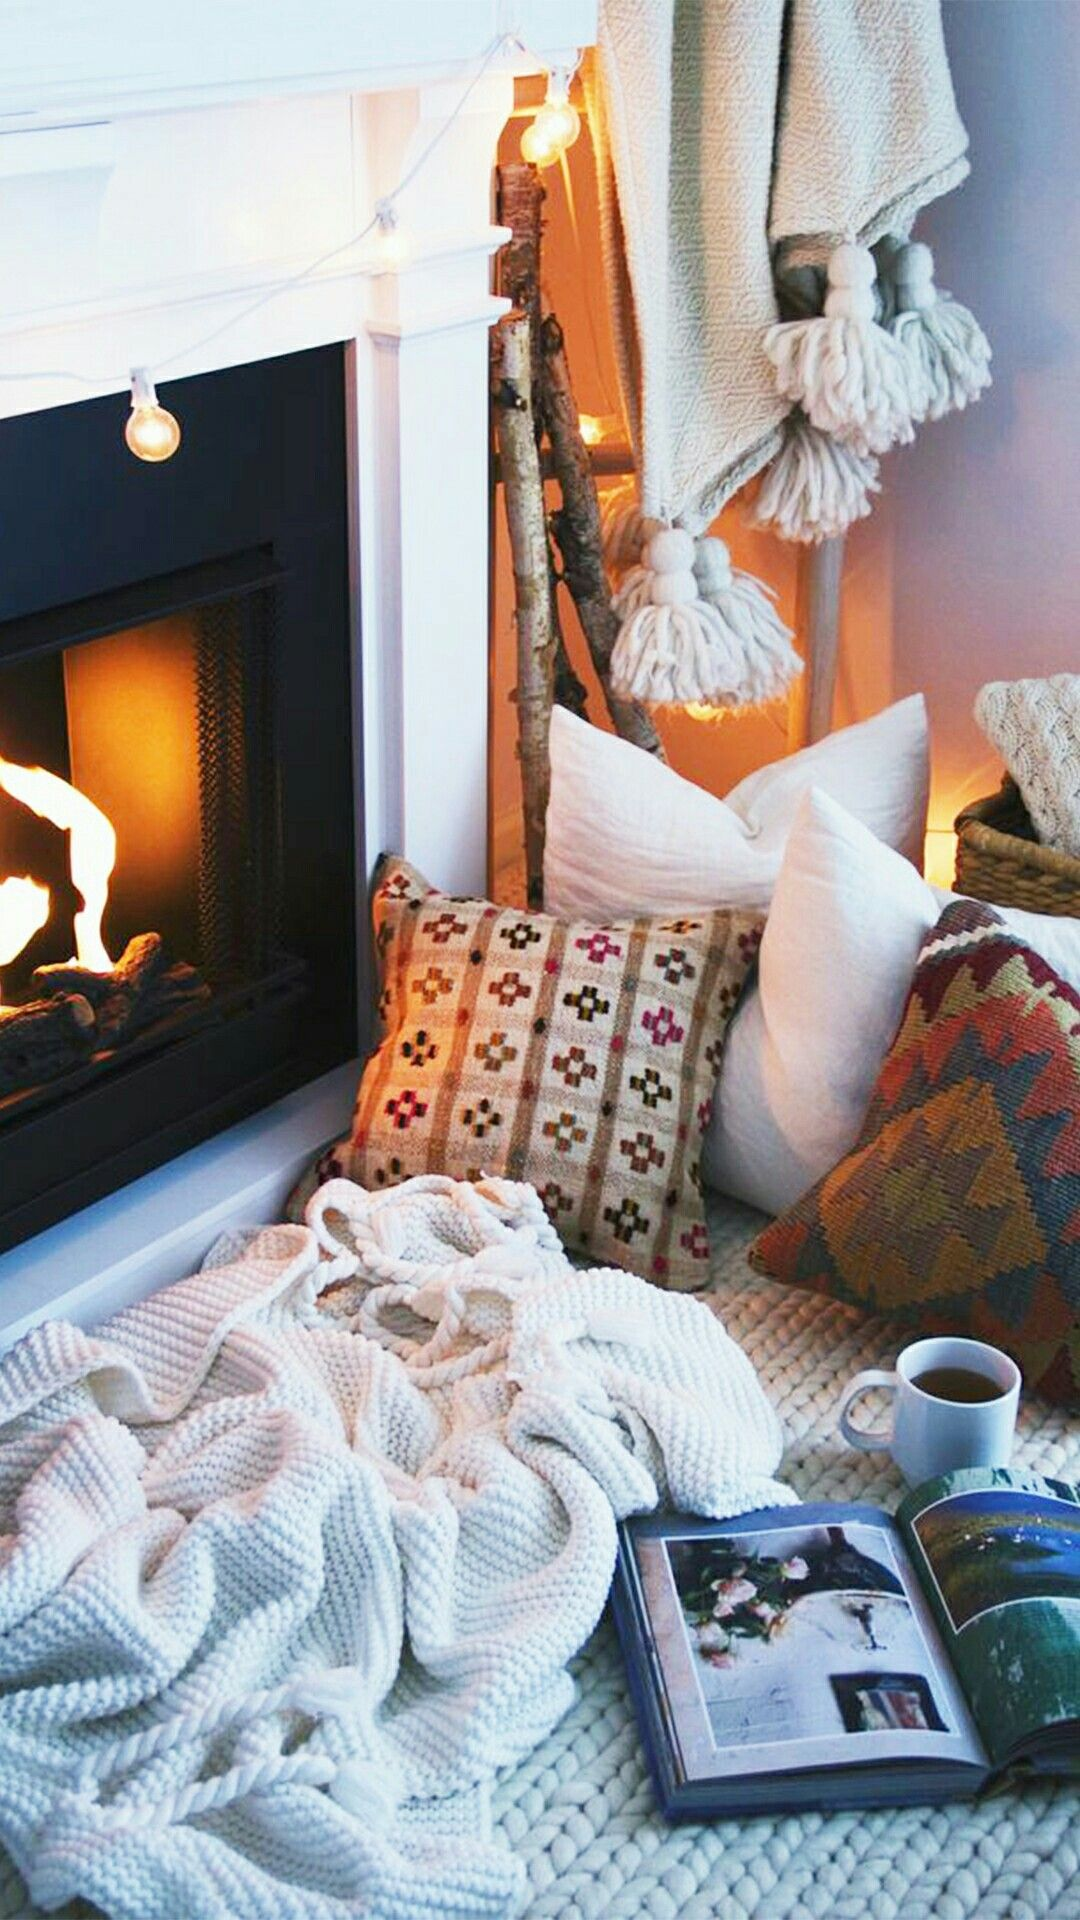 Winter Warm Snowflake Book Stay Cozy Coffee Hot Chocolate Cocoa Fireplace The Fire Blanket